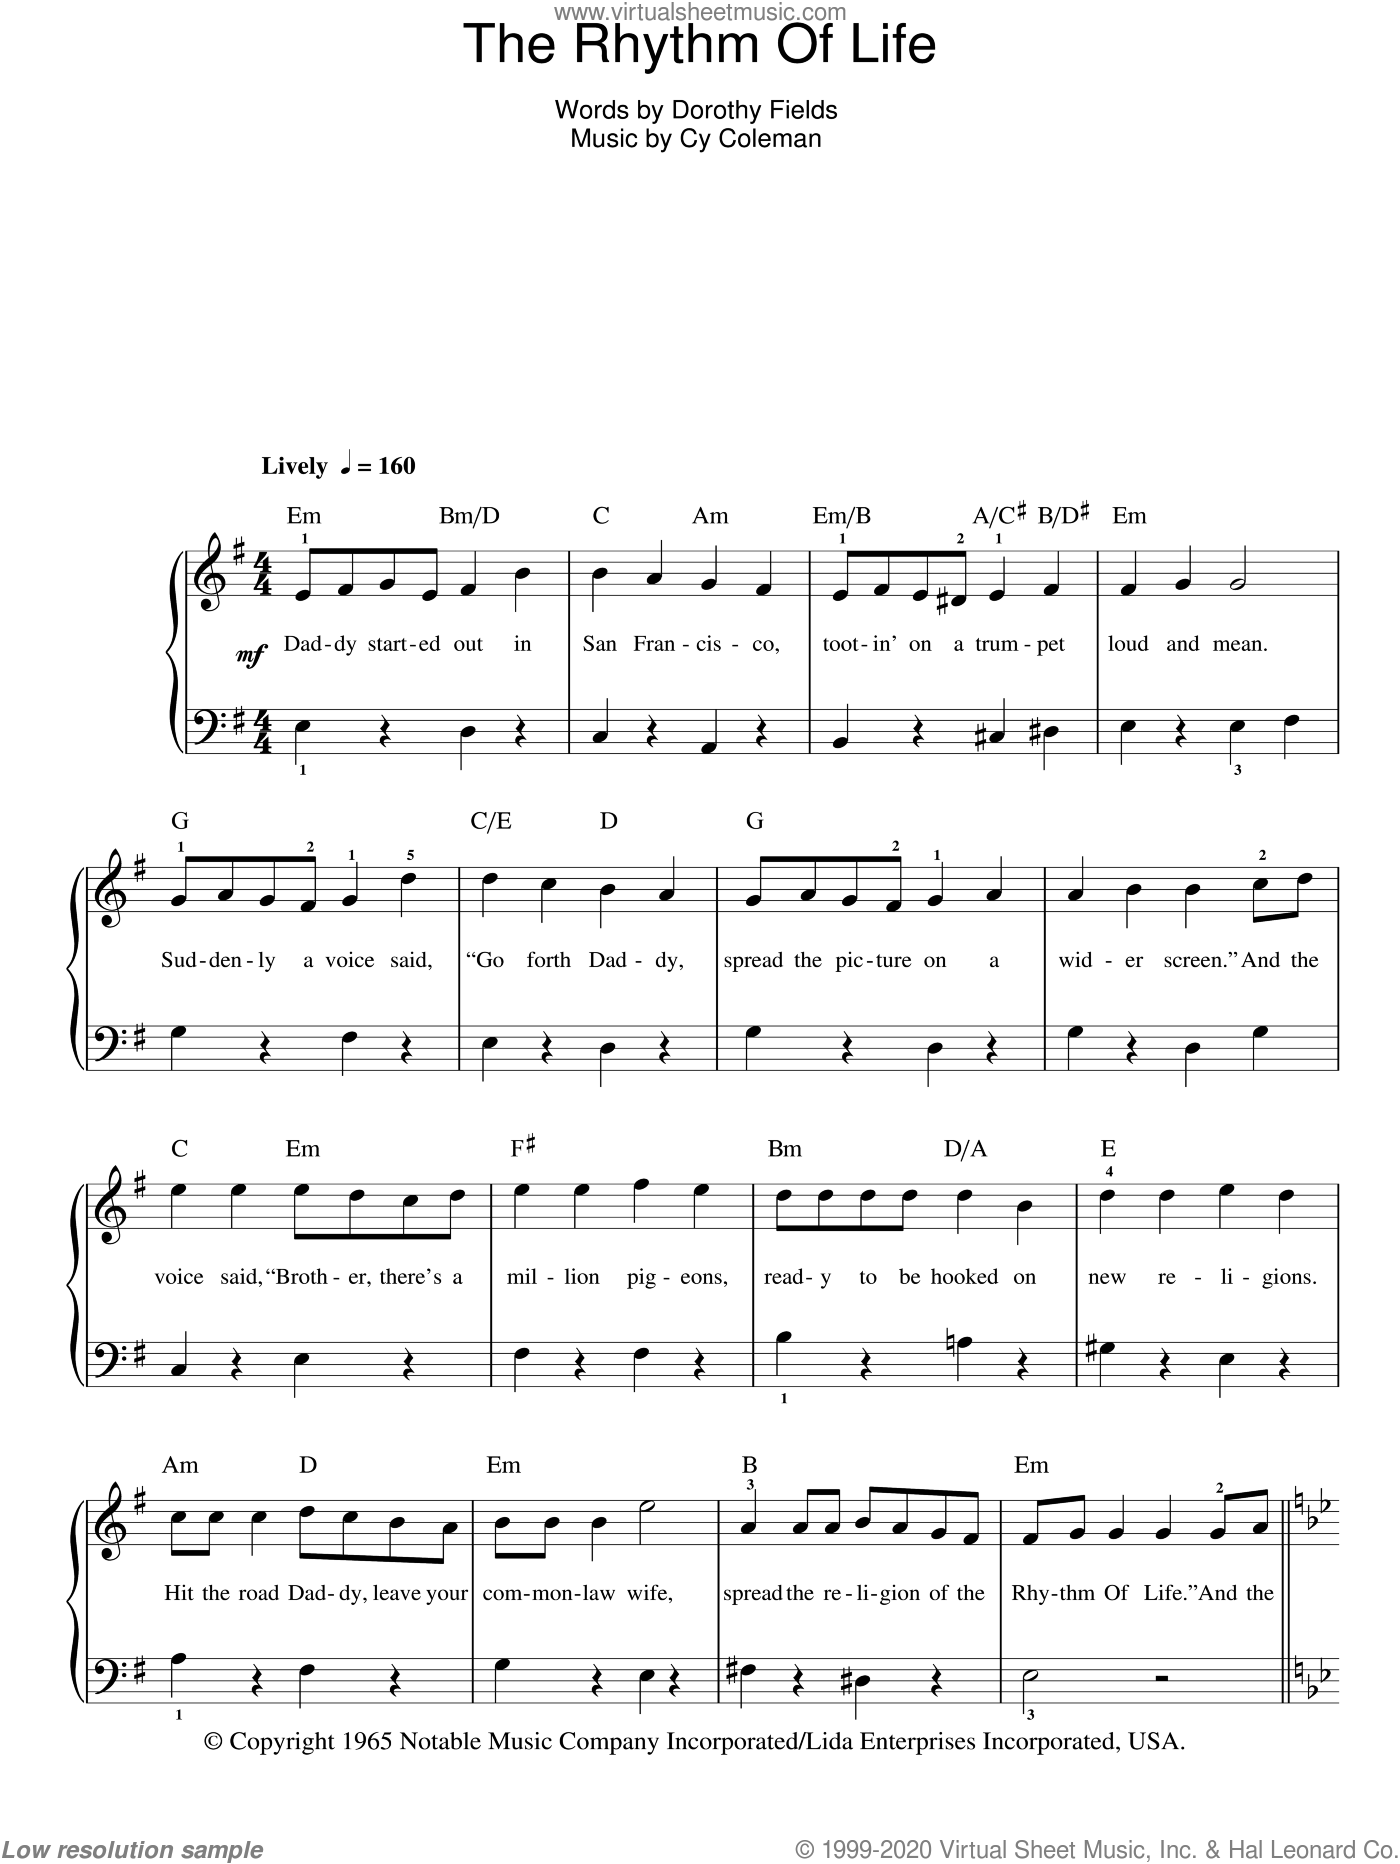 The Rhythm Of Life sheet music for piano solo by Cy Coleman and Dorothy Fields, easy skill level